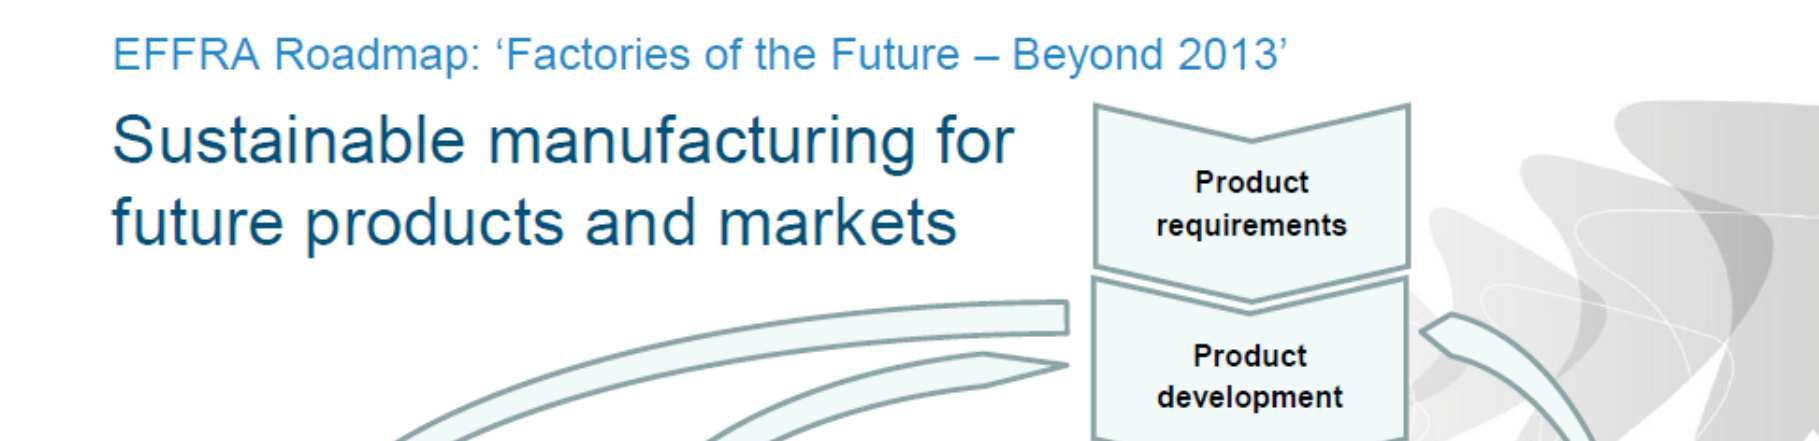 PPP Factories of the Future in